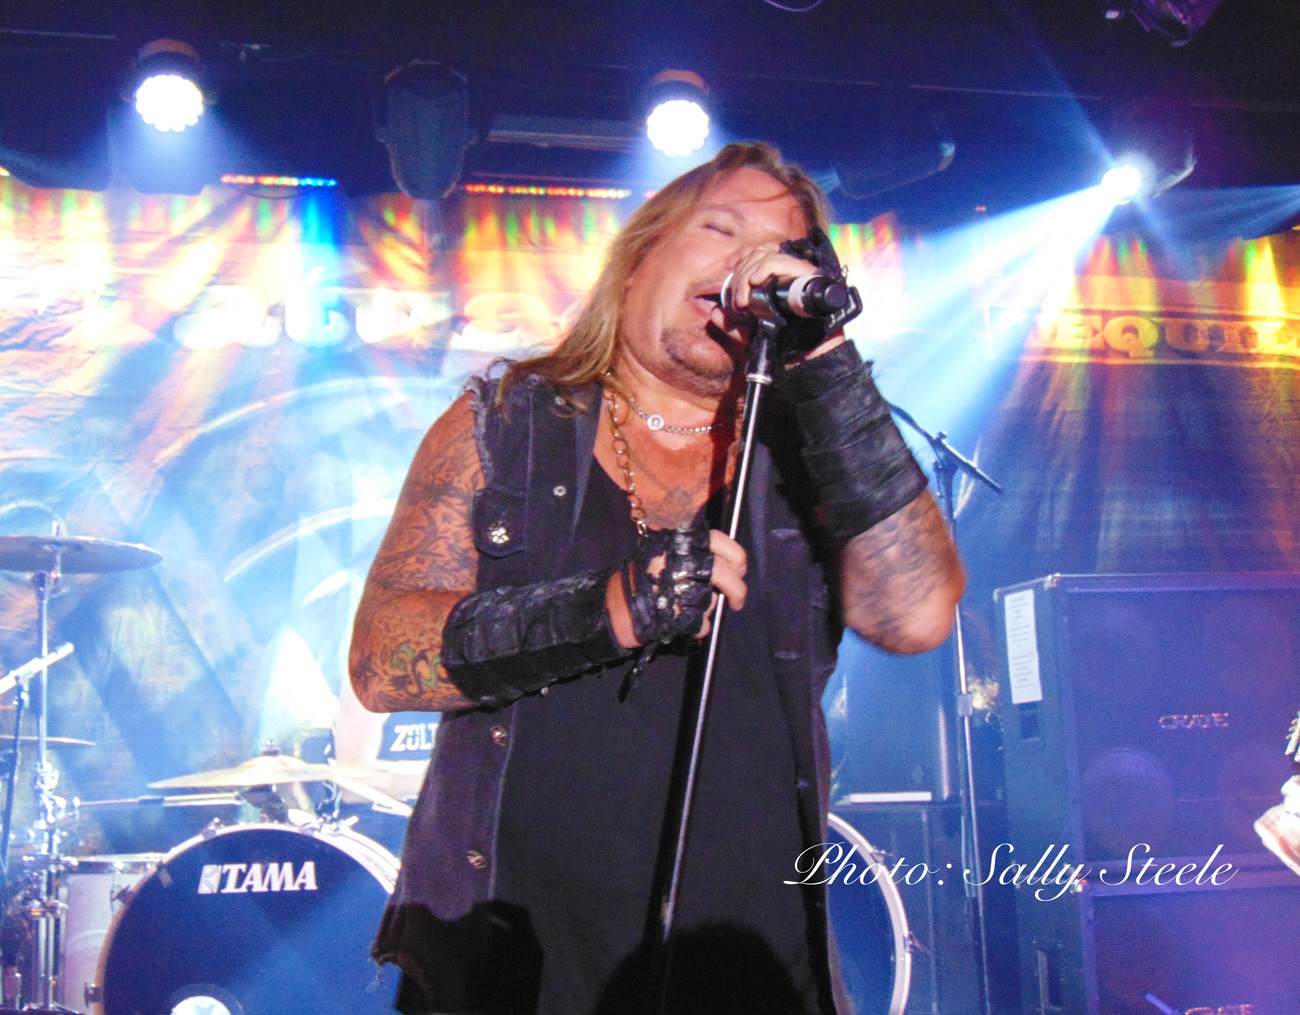 VINCE NEIL ROCKS THE GOLDEN NUGGET!